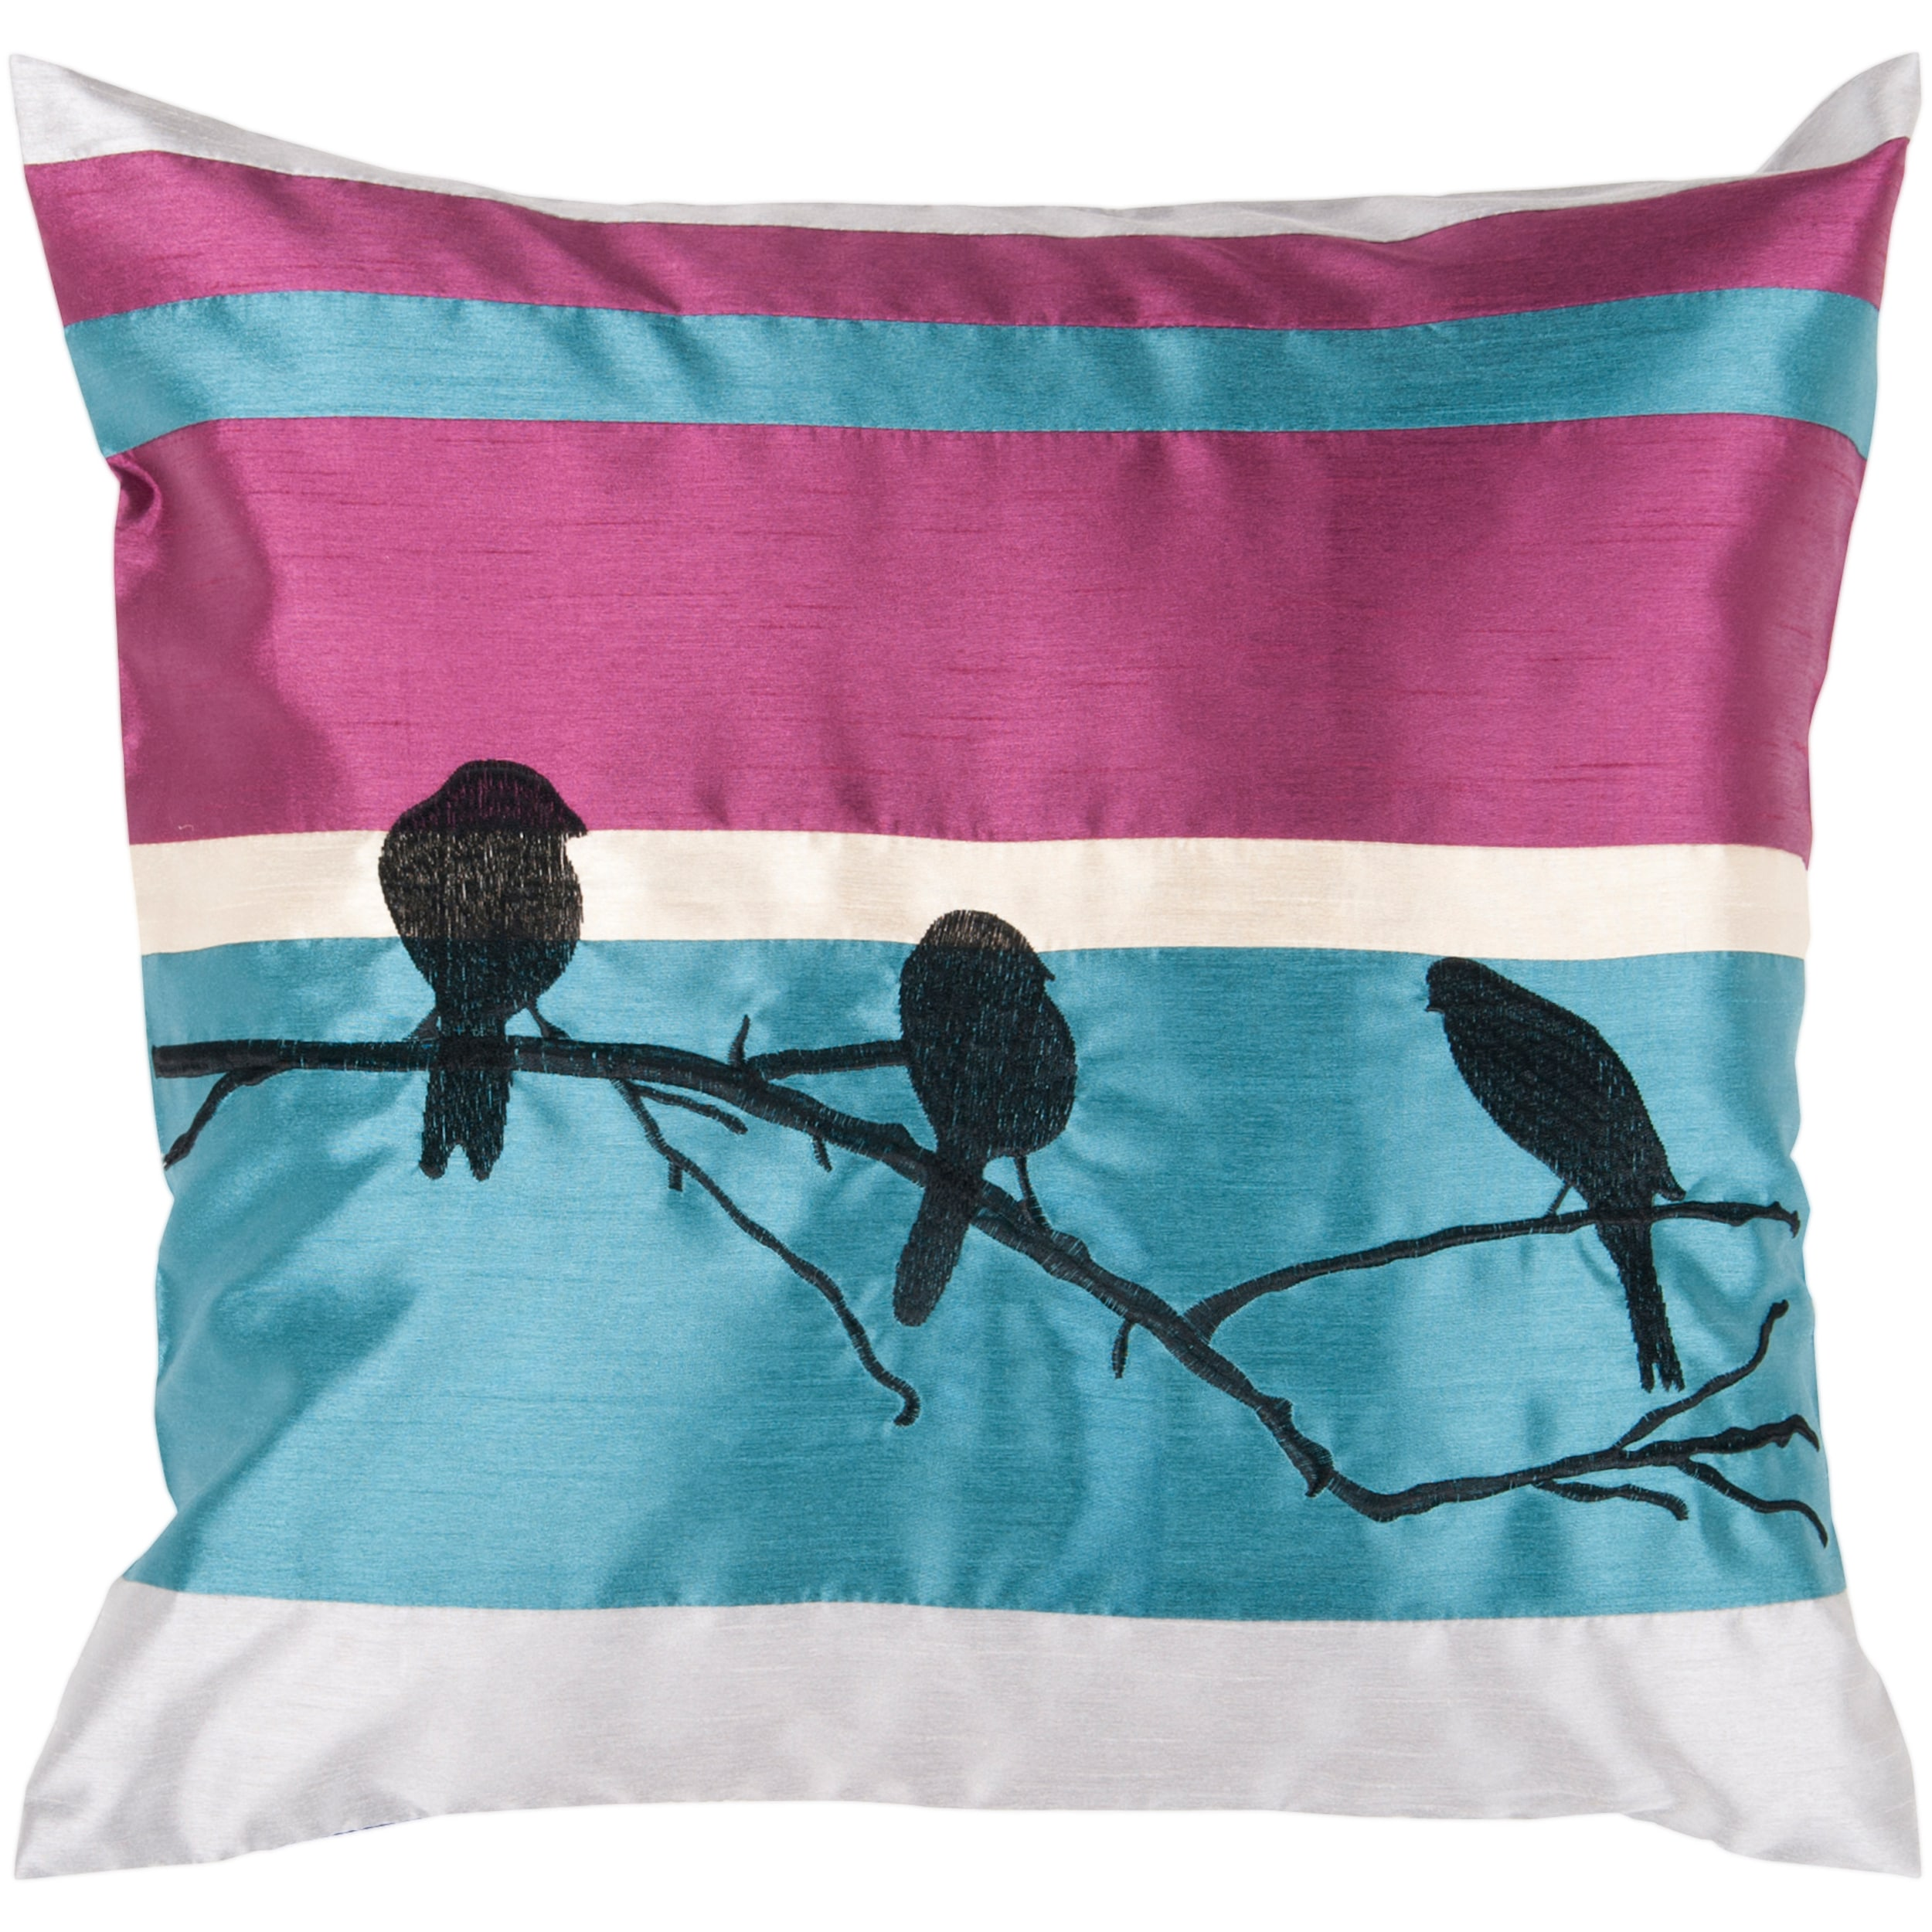 Decorative Ceres 22-inch Down Pillow